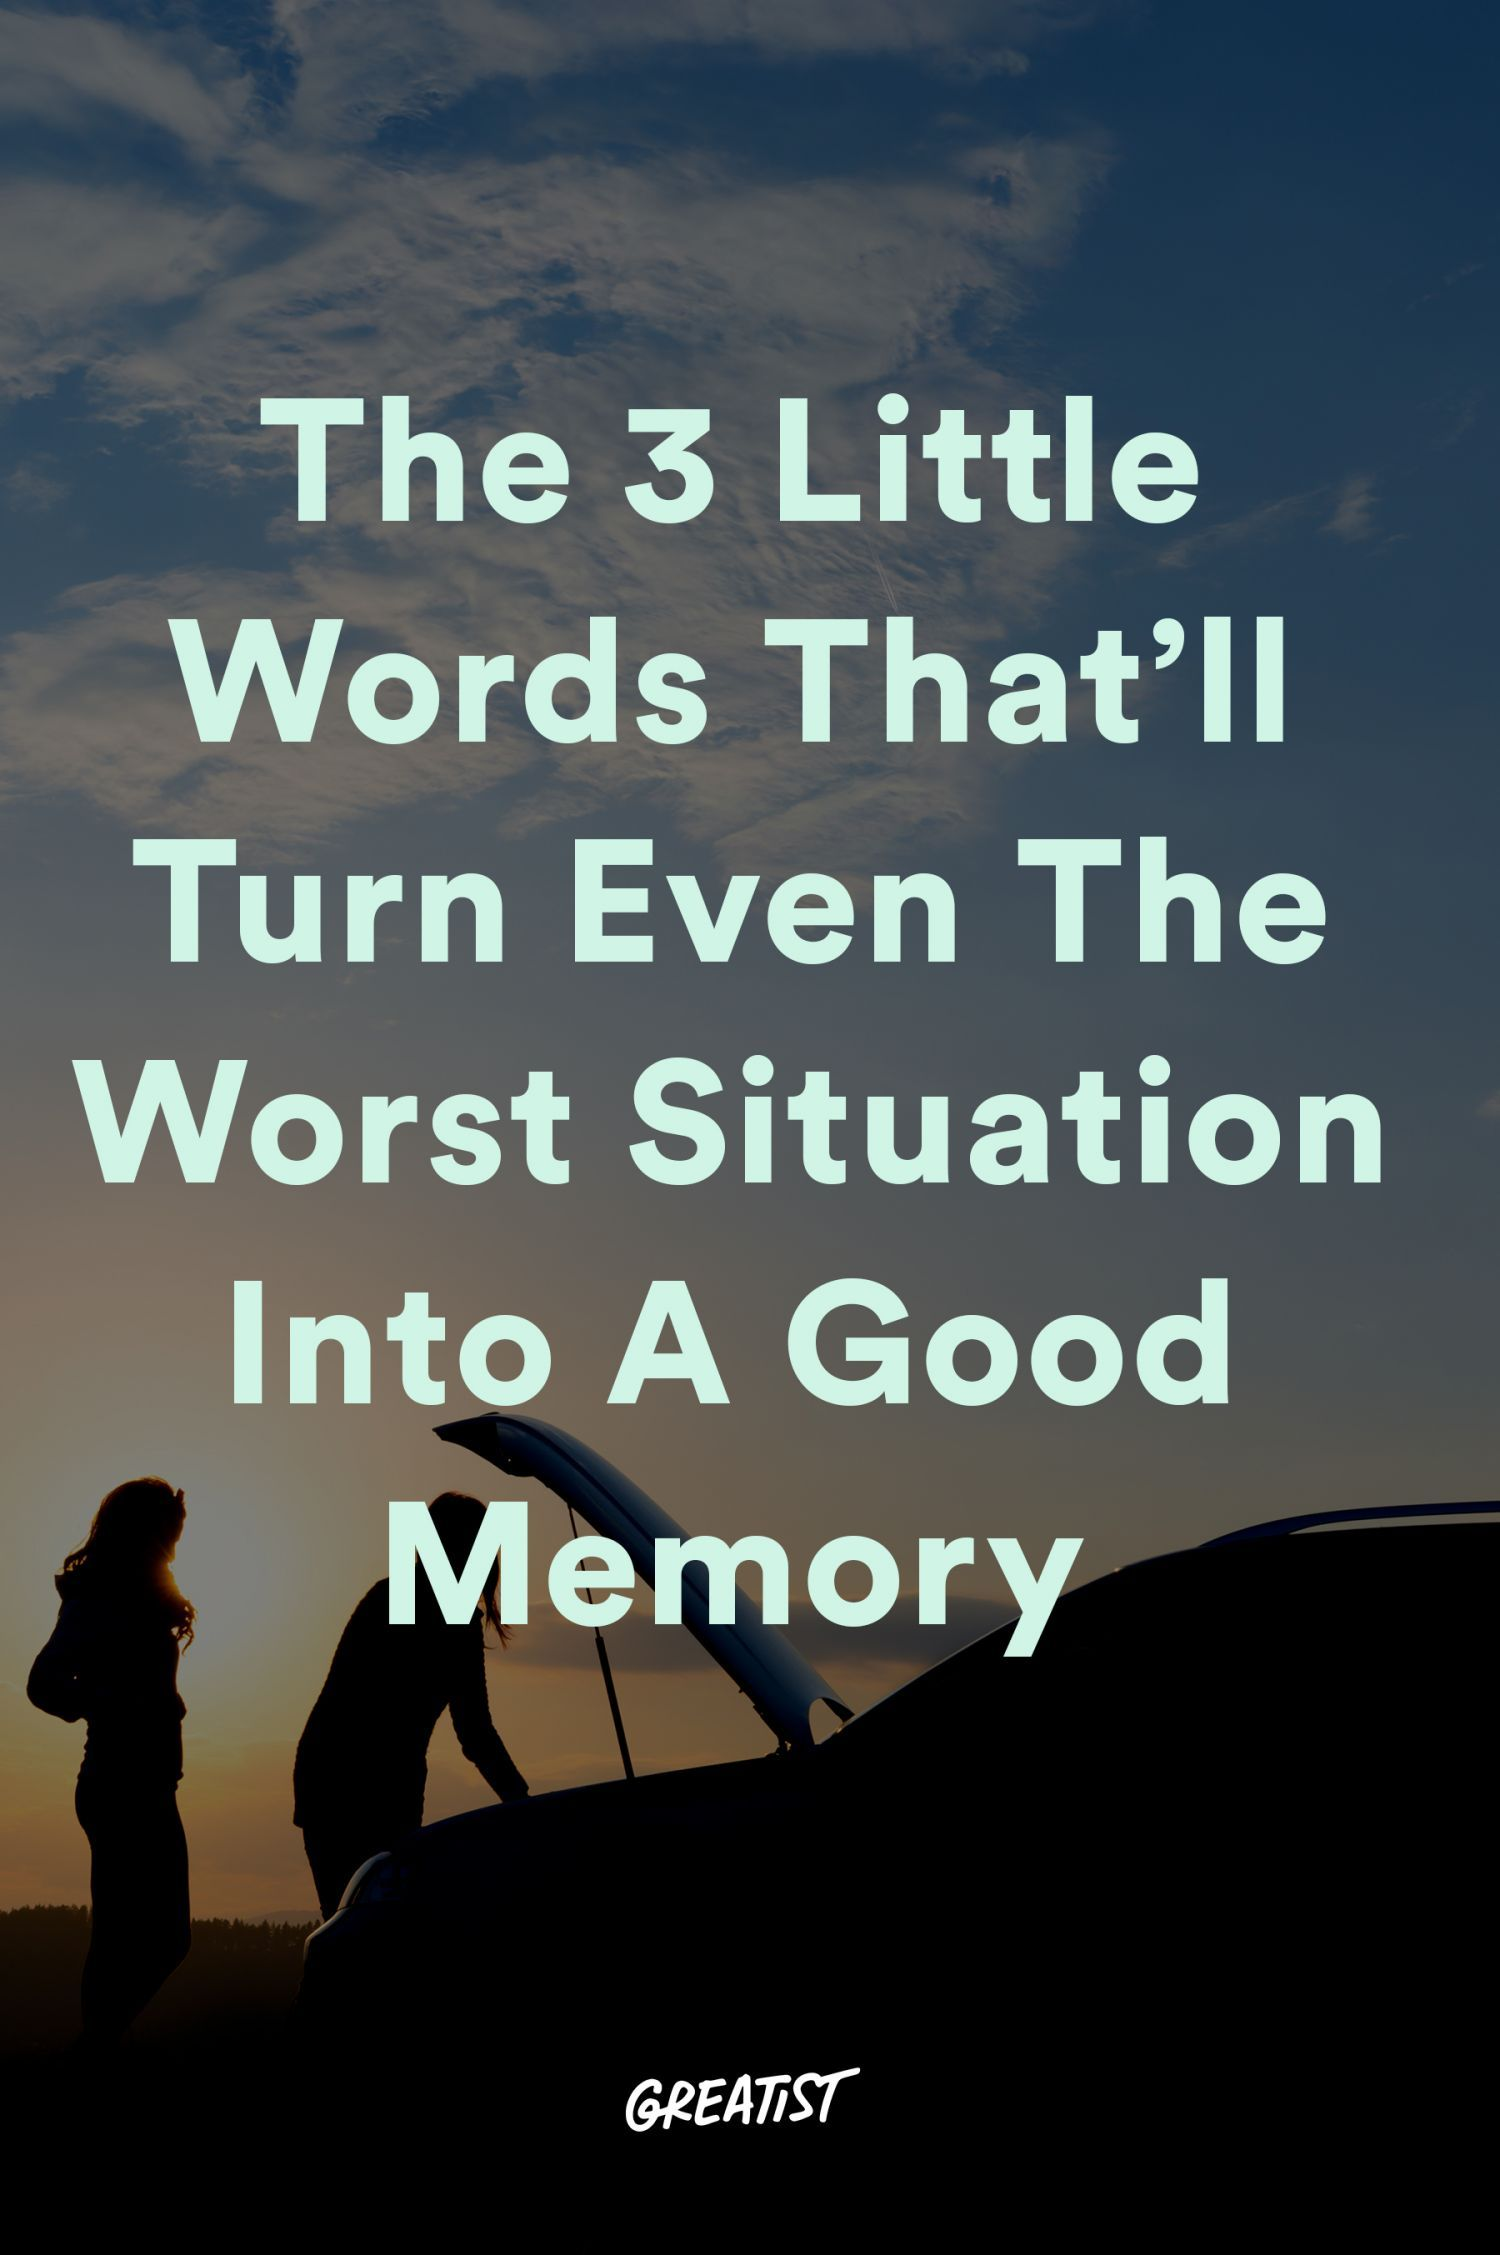 The 3 Little Words Thatll Turn Even The Worst Situation Into a Good Memory